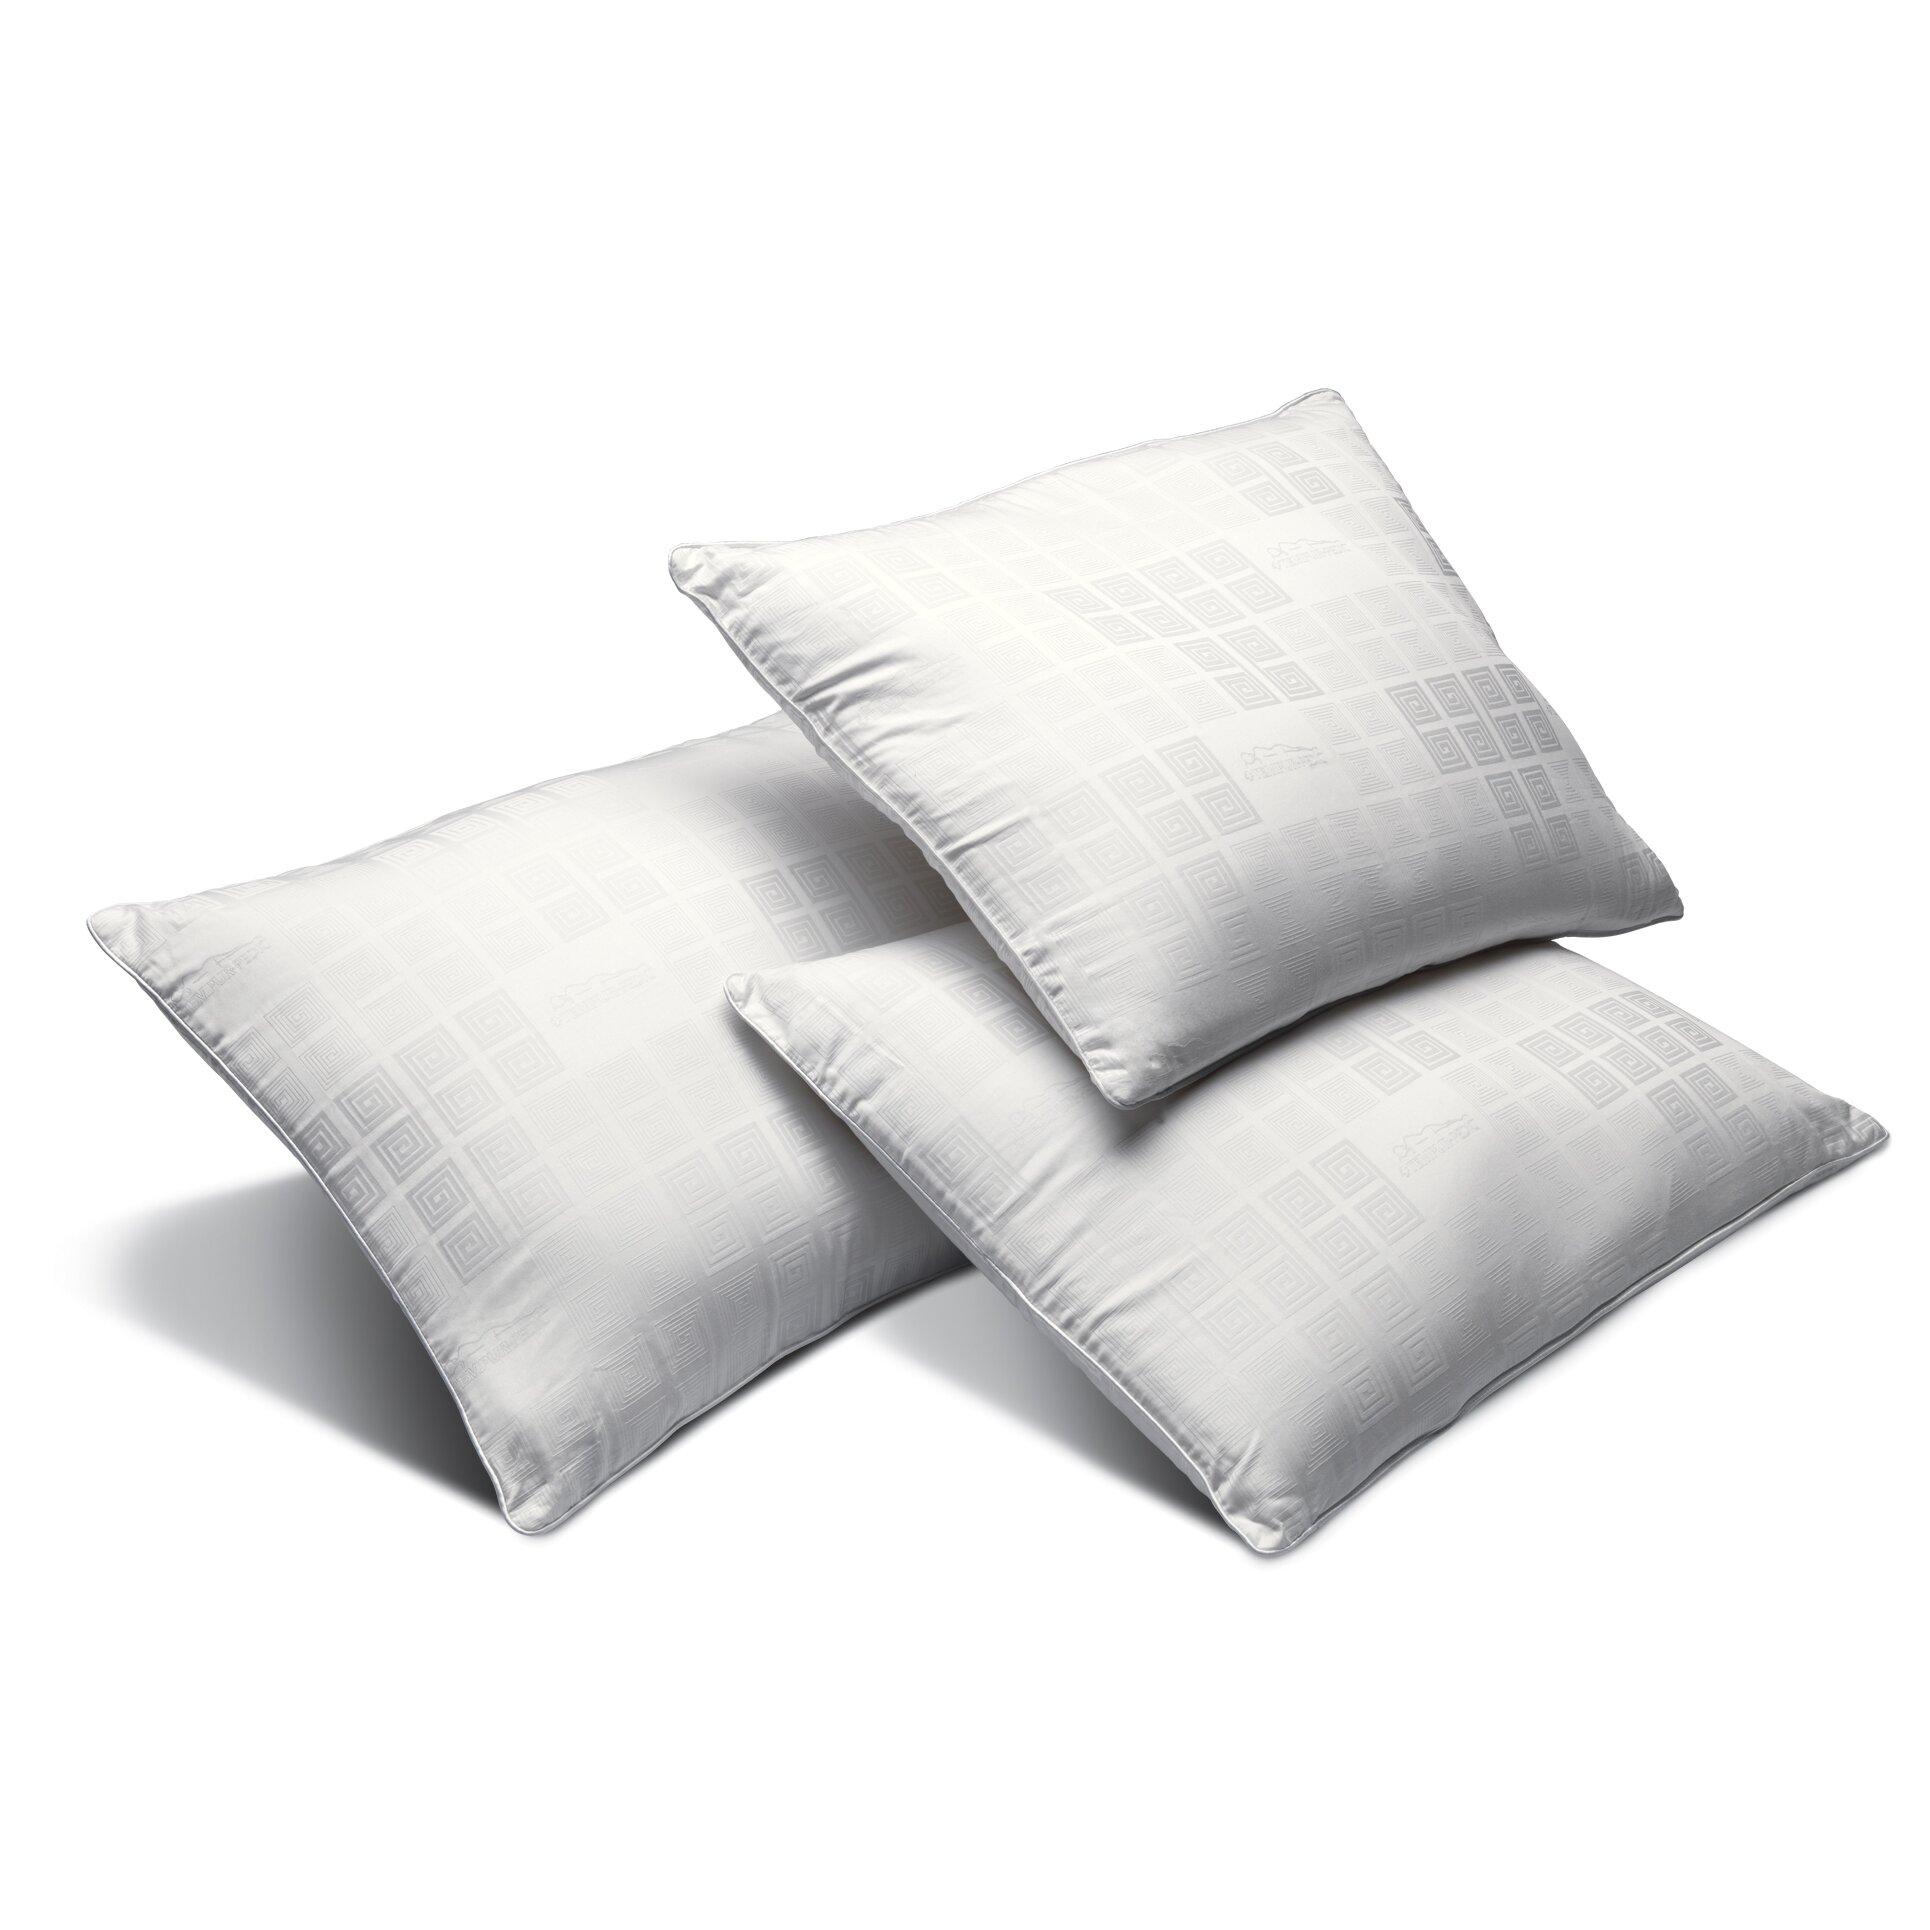 Tempur-Pedic Soft Traditional Standard Pillow Wayfair